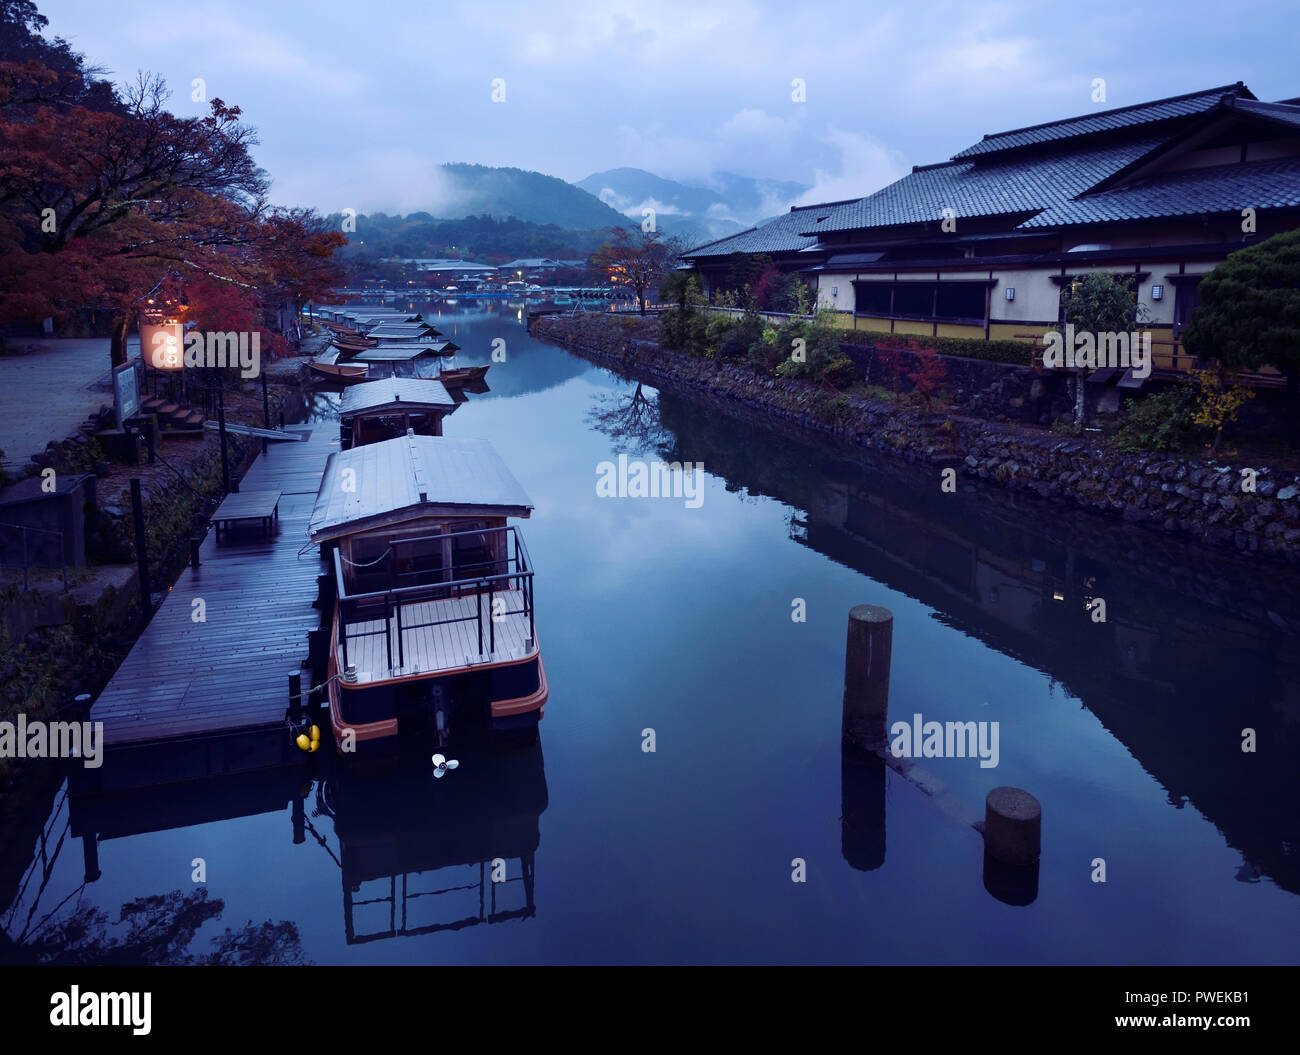 Japanese sightseeing Hoshinoya boats in a misty autumn morning scenery at Katsura River 桂川 Katsura-gawa with fog covered mountains in the background.  - Stock Image